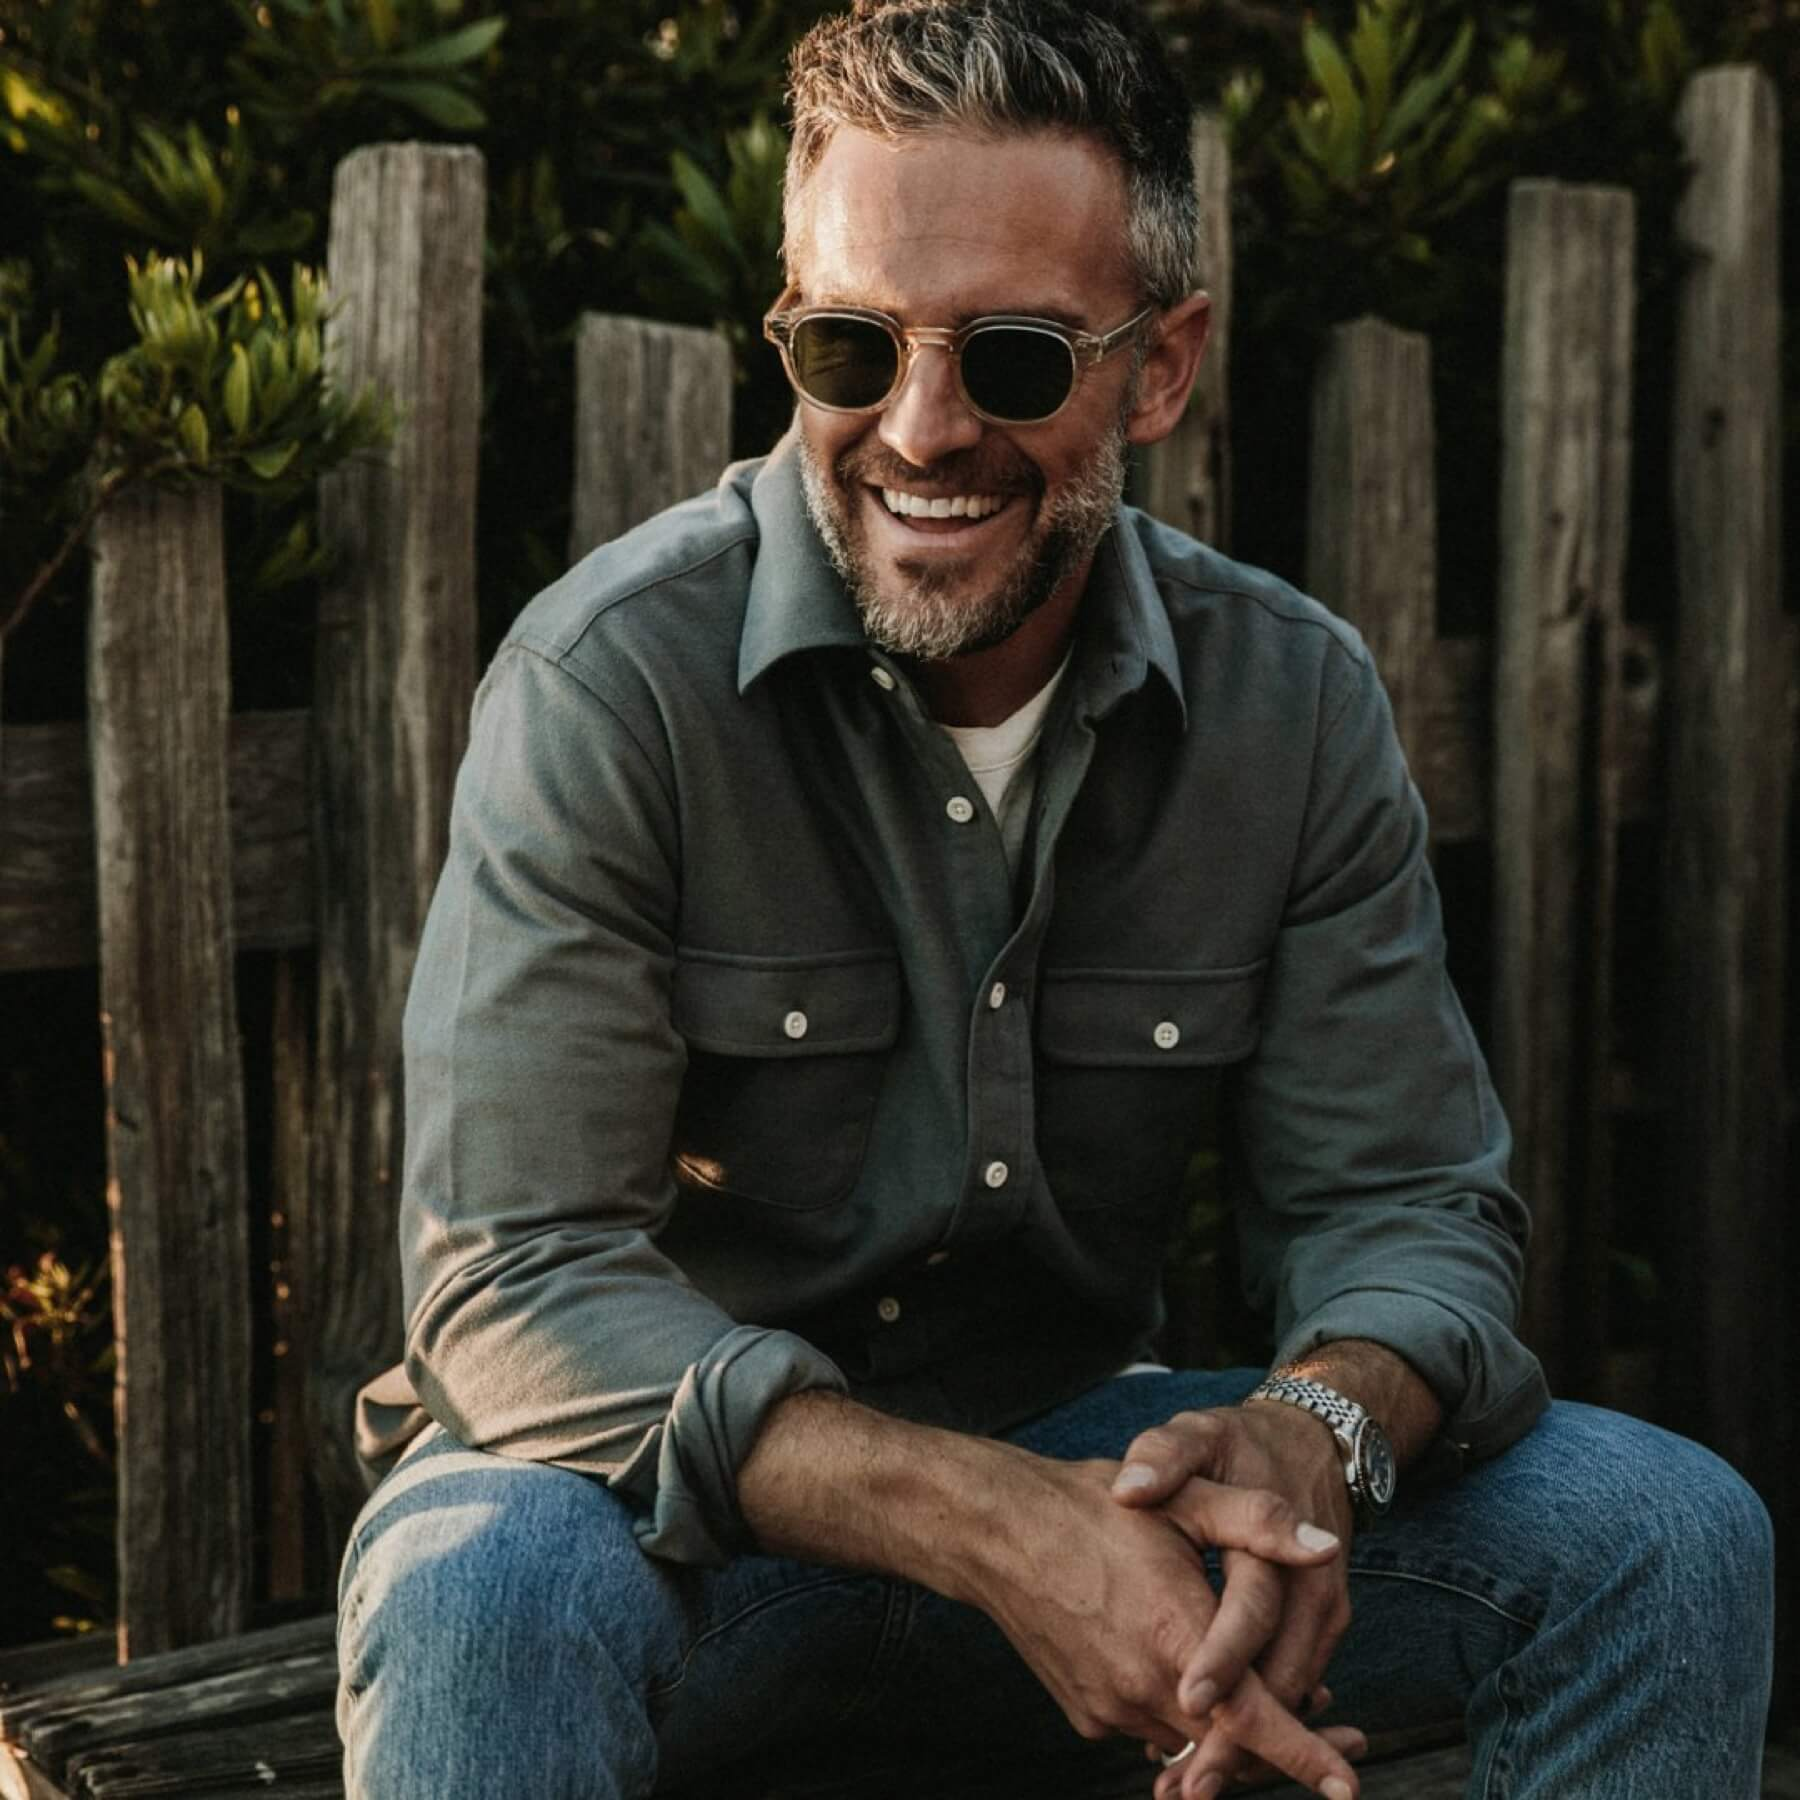 The best shirt jackets for men in 2019